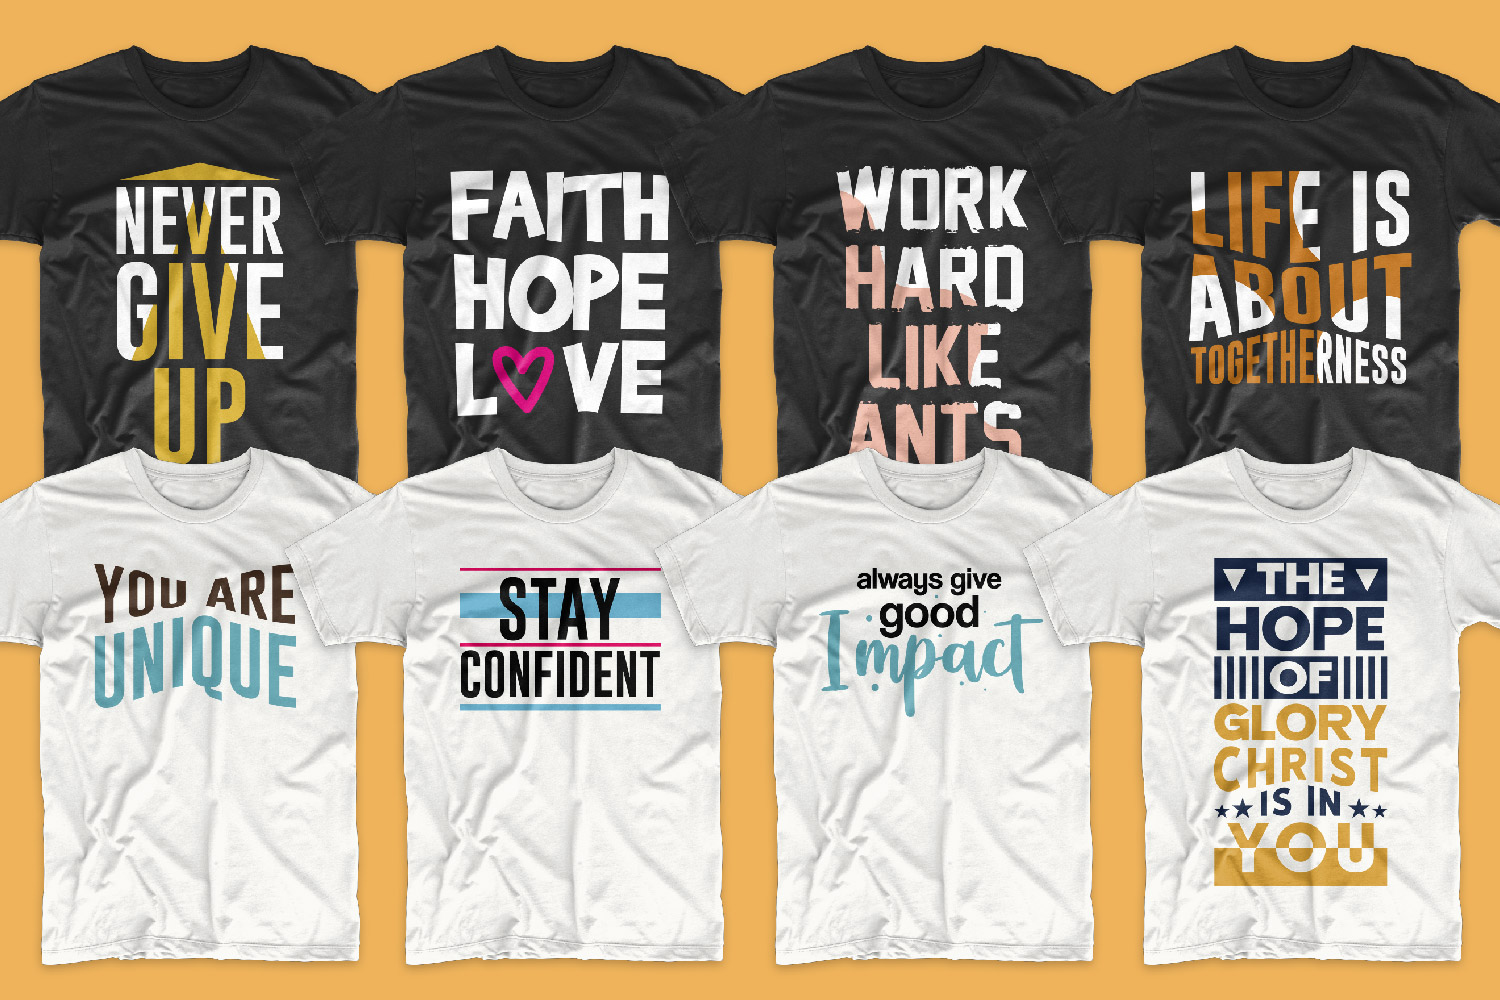 This set contains only black and white T-shirts with different colored lettering.